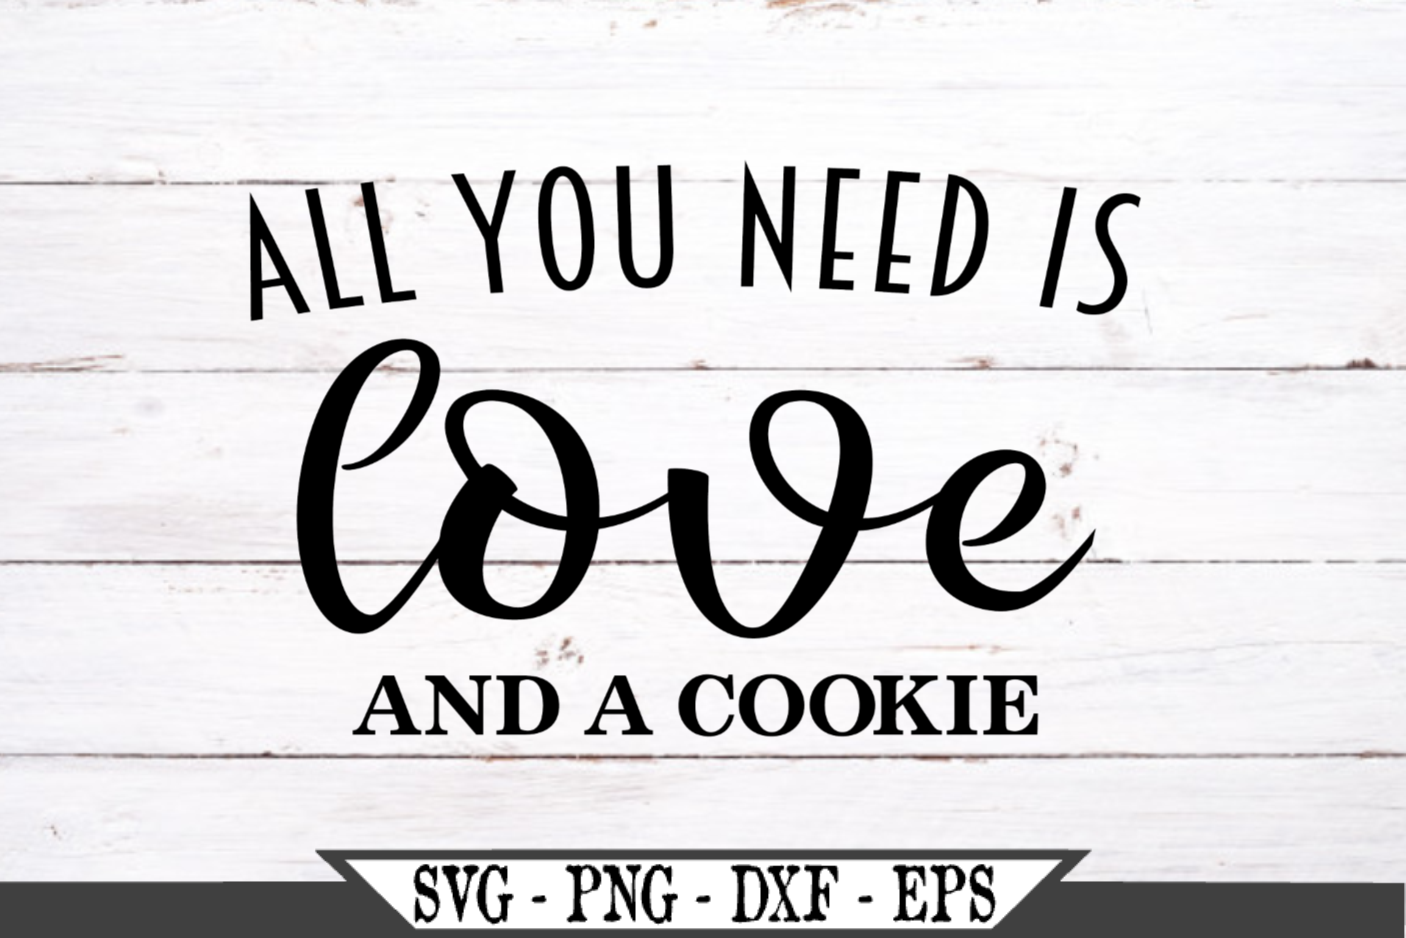 All You Need Is Love And A Cookie SVG example image 2